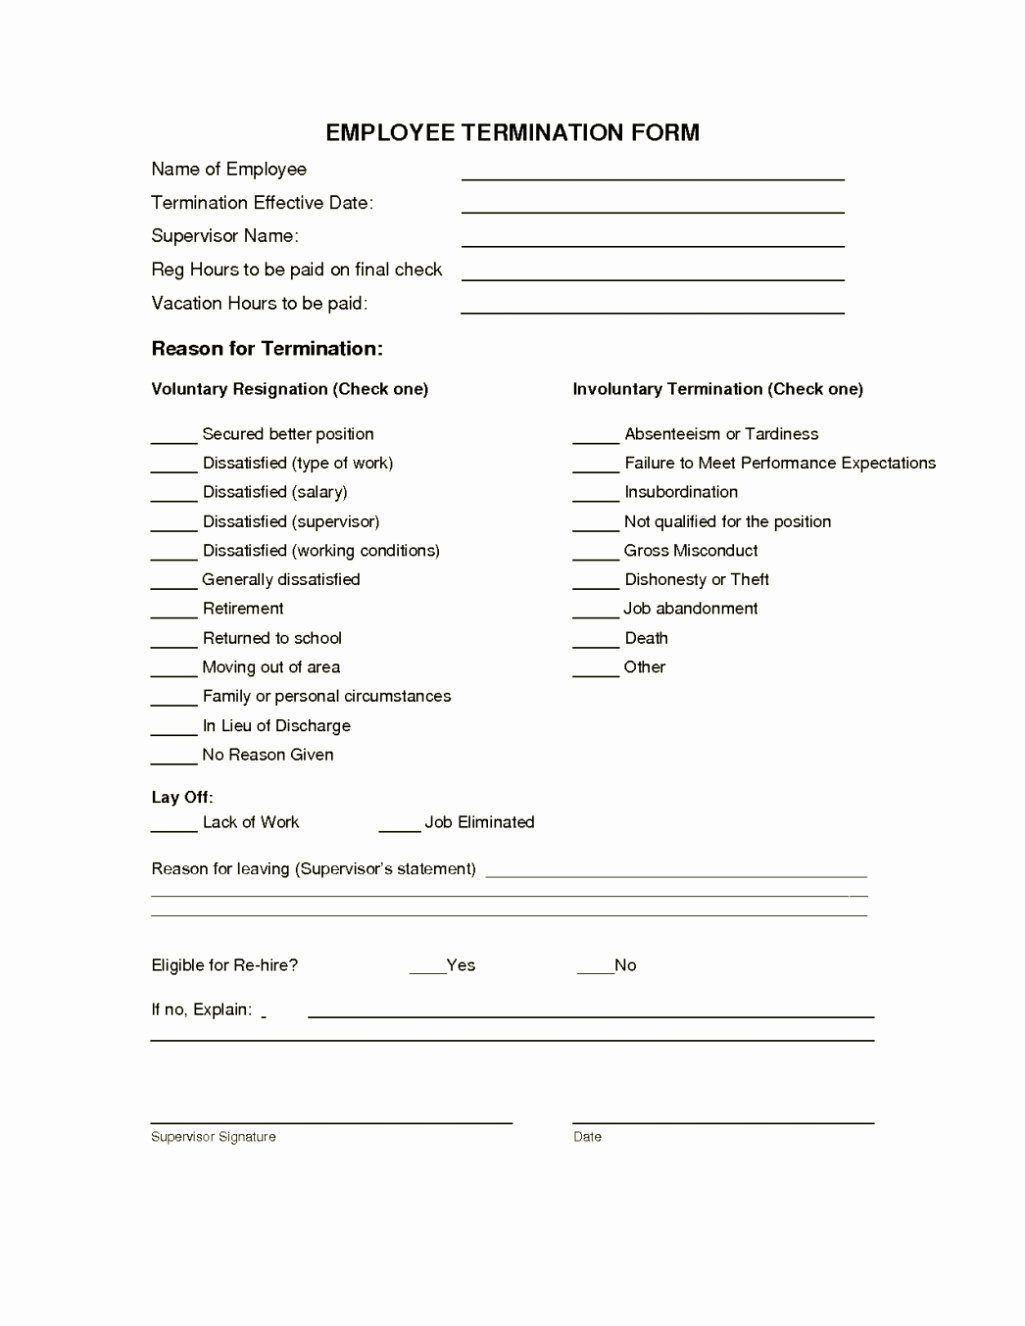 Free Employment Termination forms Fresh Employee Termination form Template Template Update234